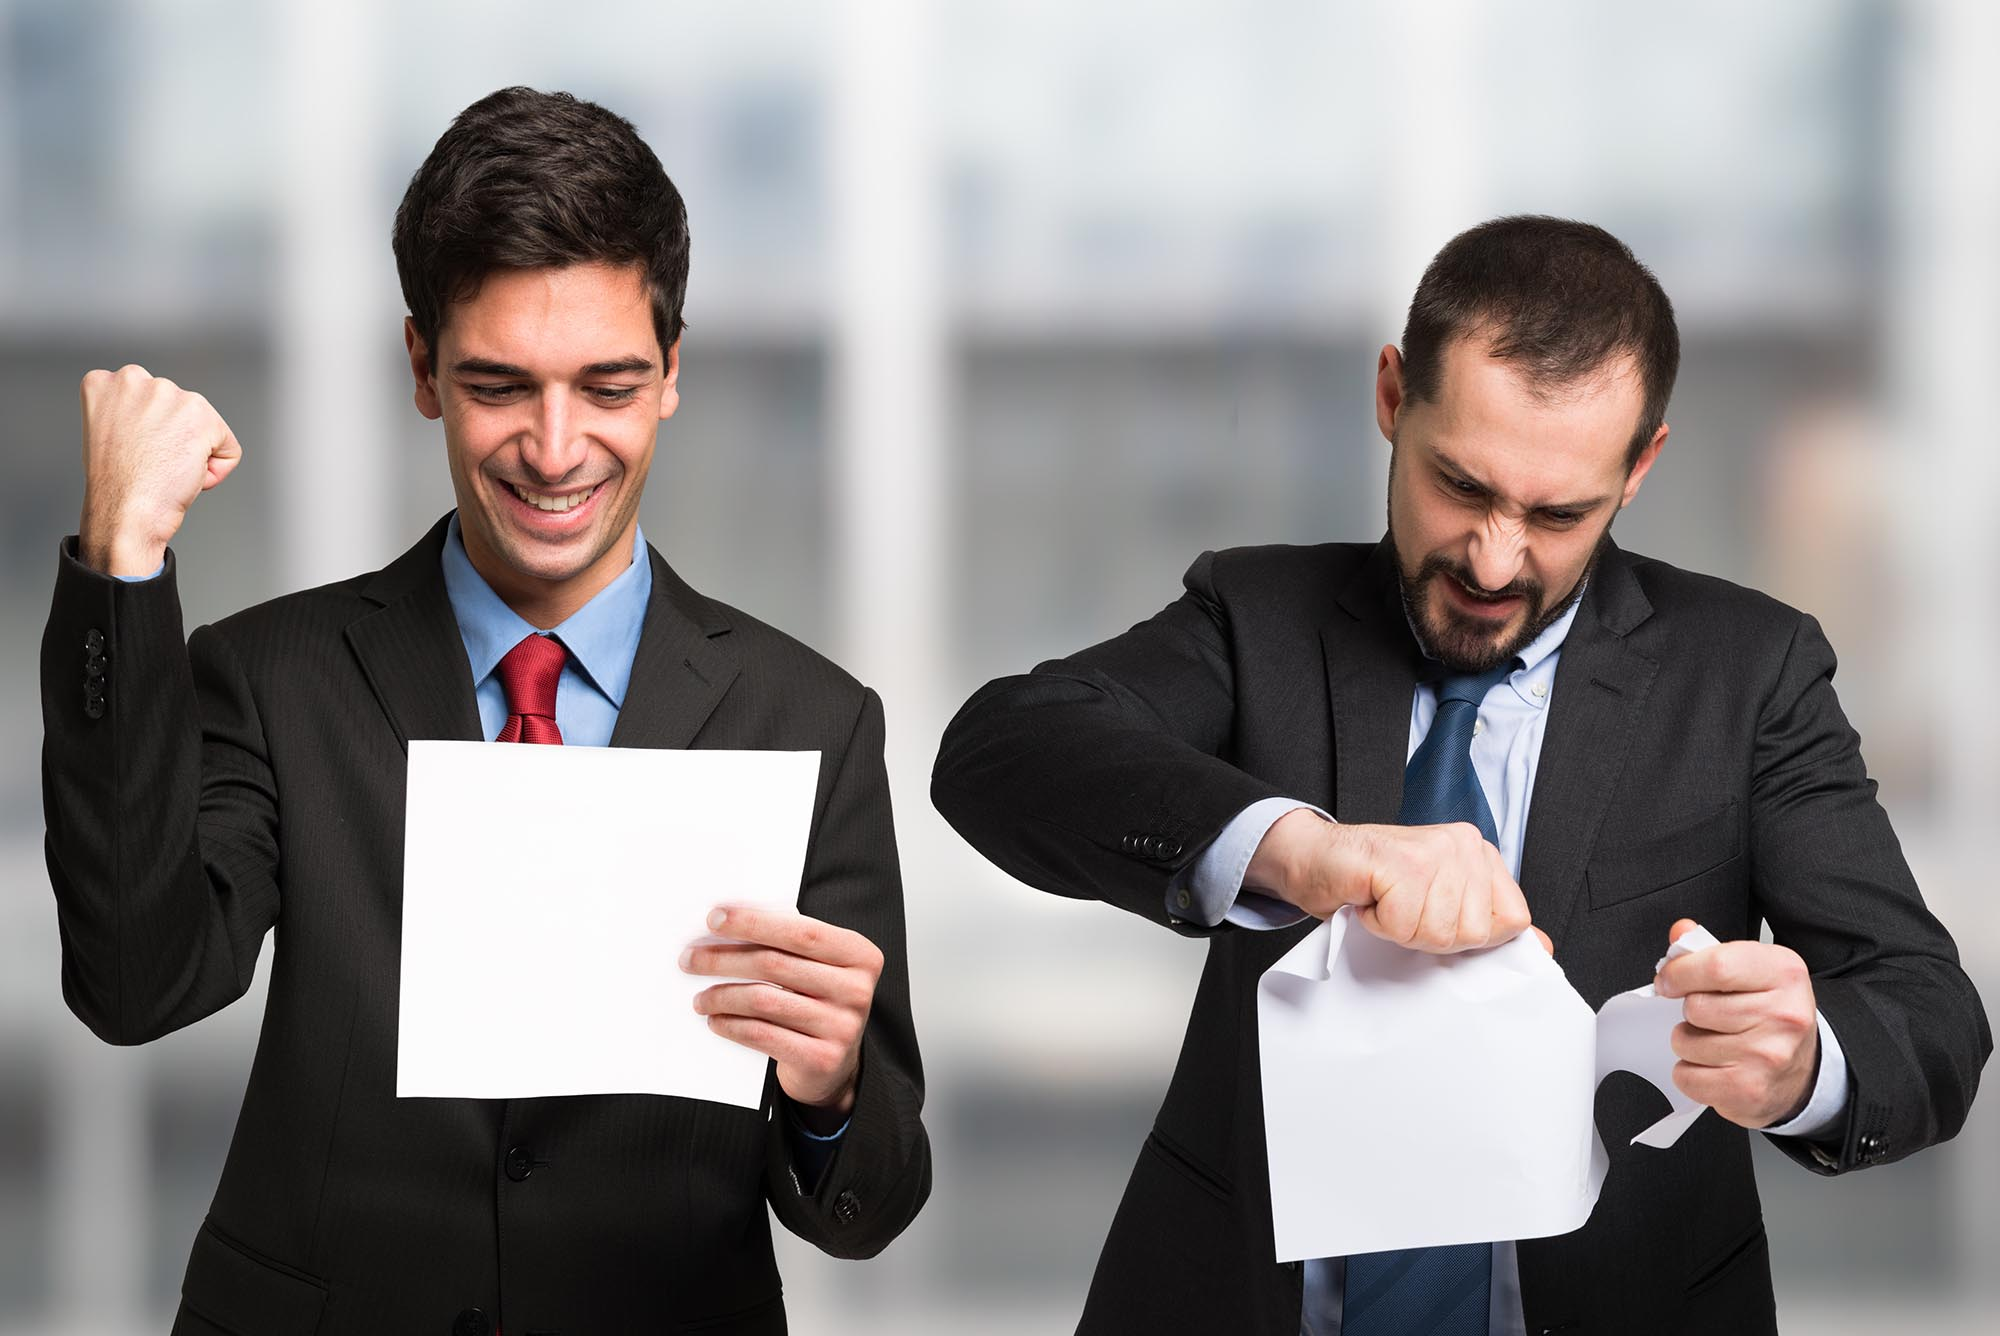 What To Do as a New Manager